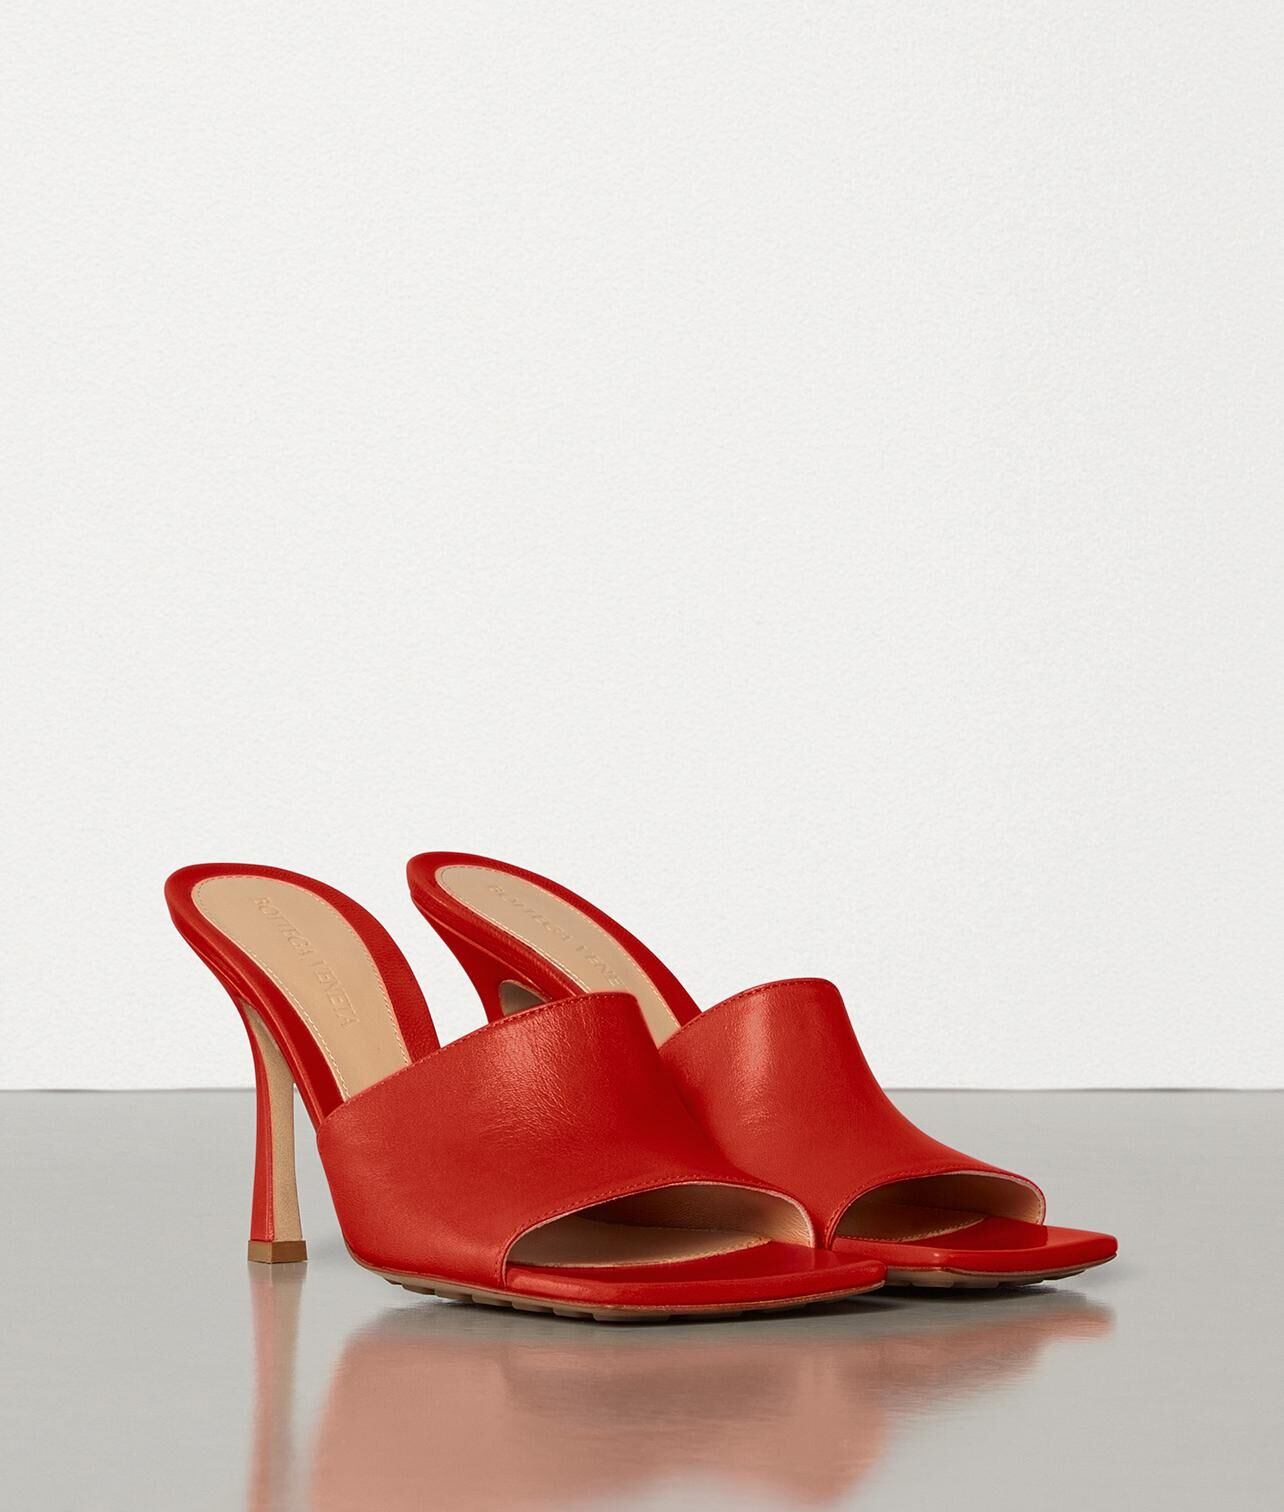 Bottega Veneta Shoes BV2048 Red